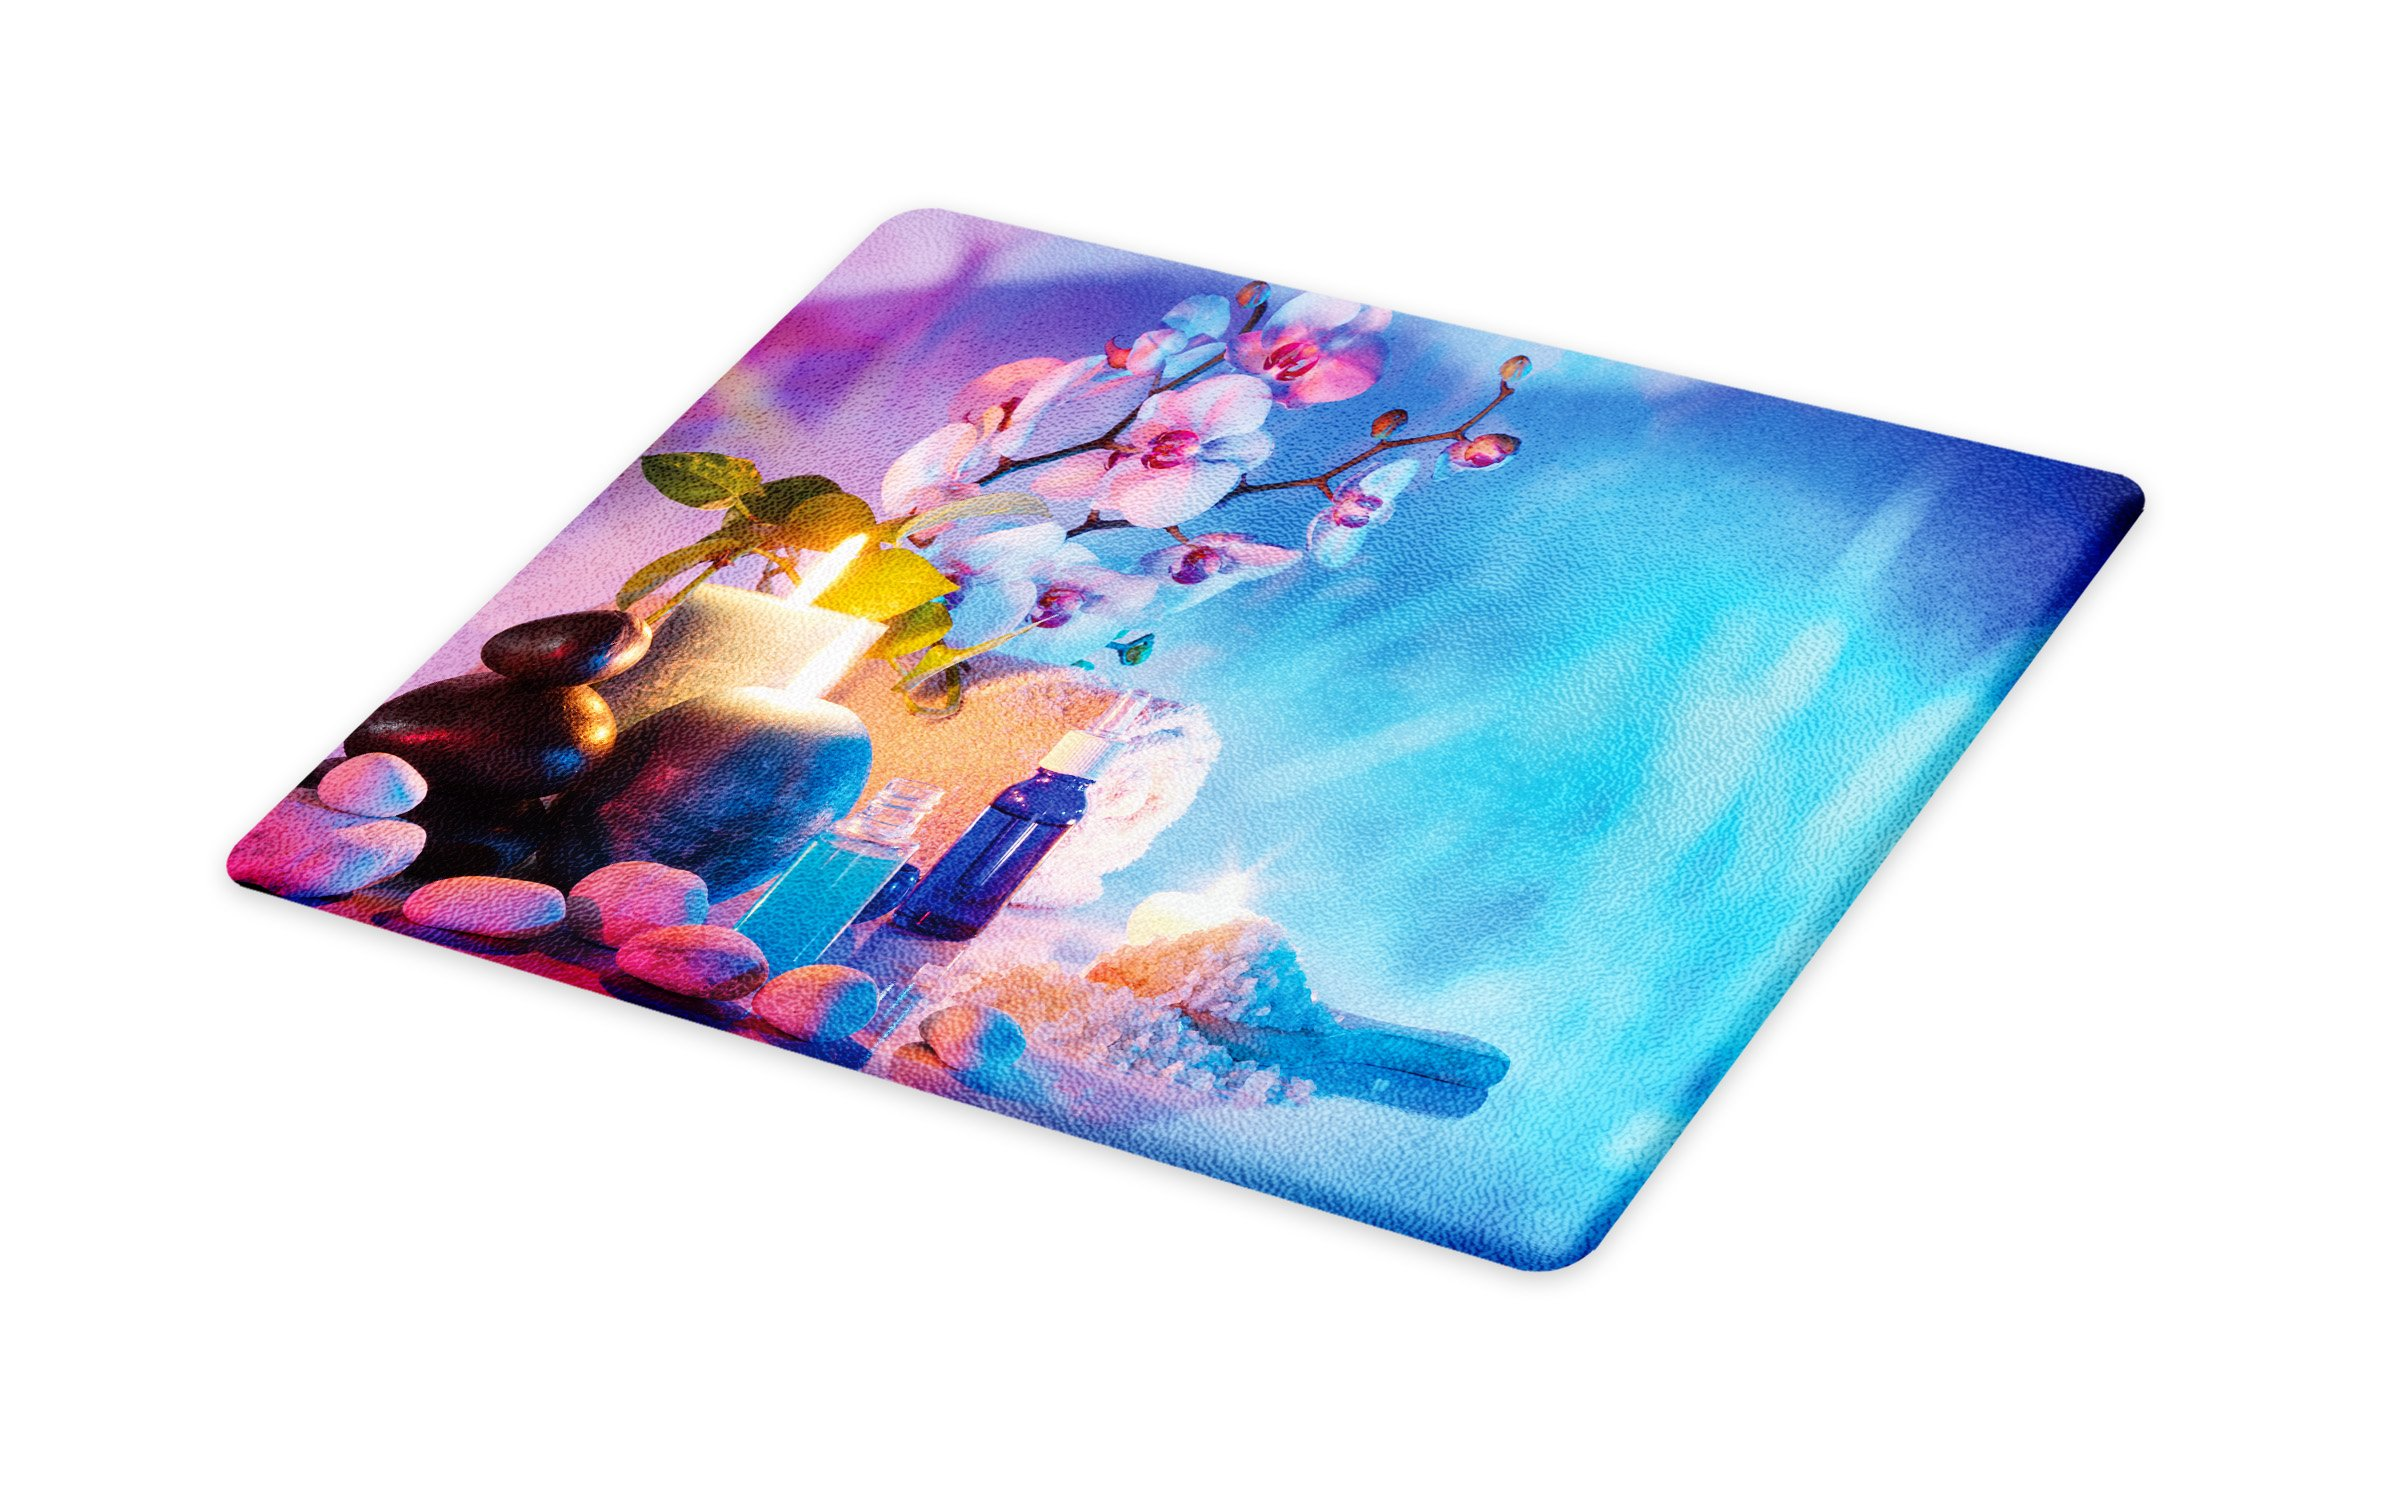 Lunarable Spa Cutting Board, Preparation for Bath Massage in Garden with Stones Flowers Essential Oils Aromatherapy, Decorative Tempered Glass Cutting and Serving Board, Large Size, Pink Blue